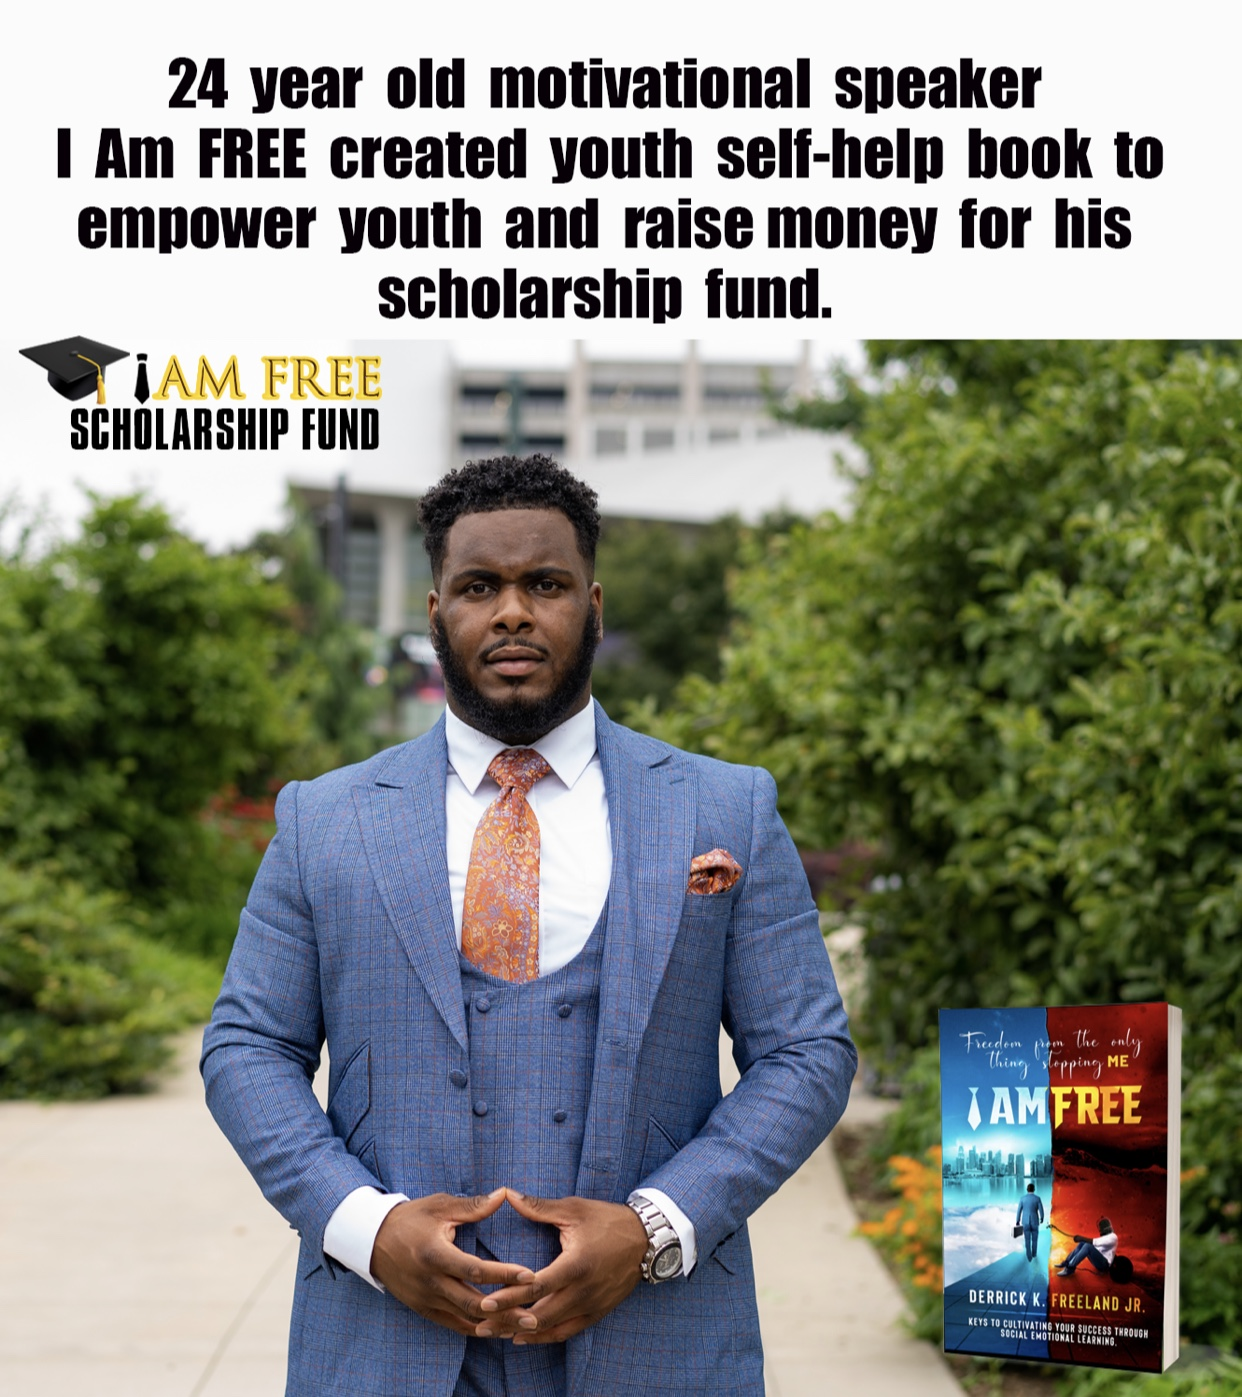 """Derrick K Freeland Jr. launches the """"I Am FREE book"""" to empower youth through Social Emotional Learning and raise money for his scholarship fund"""